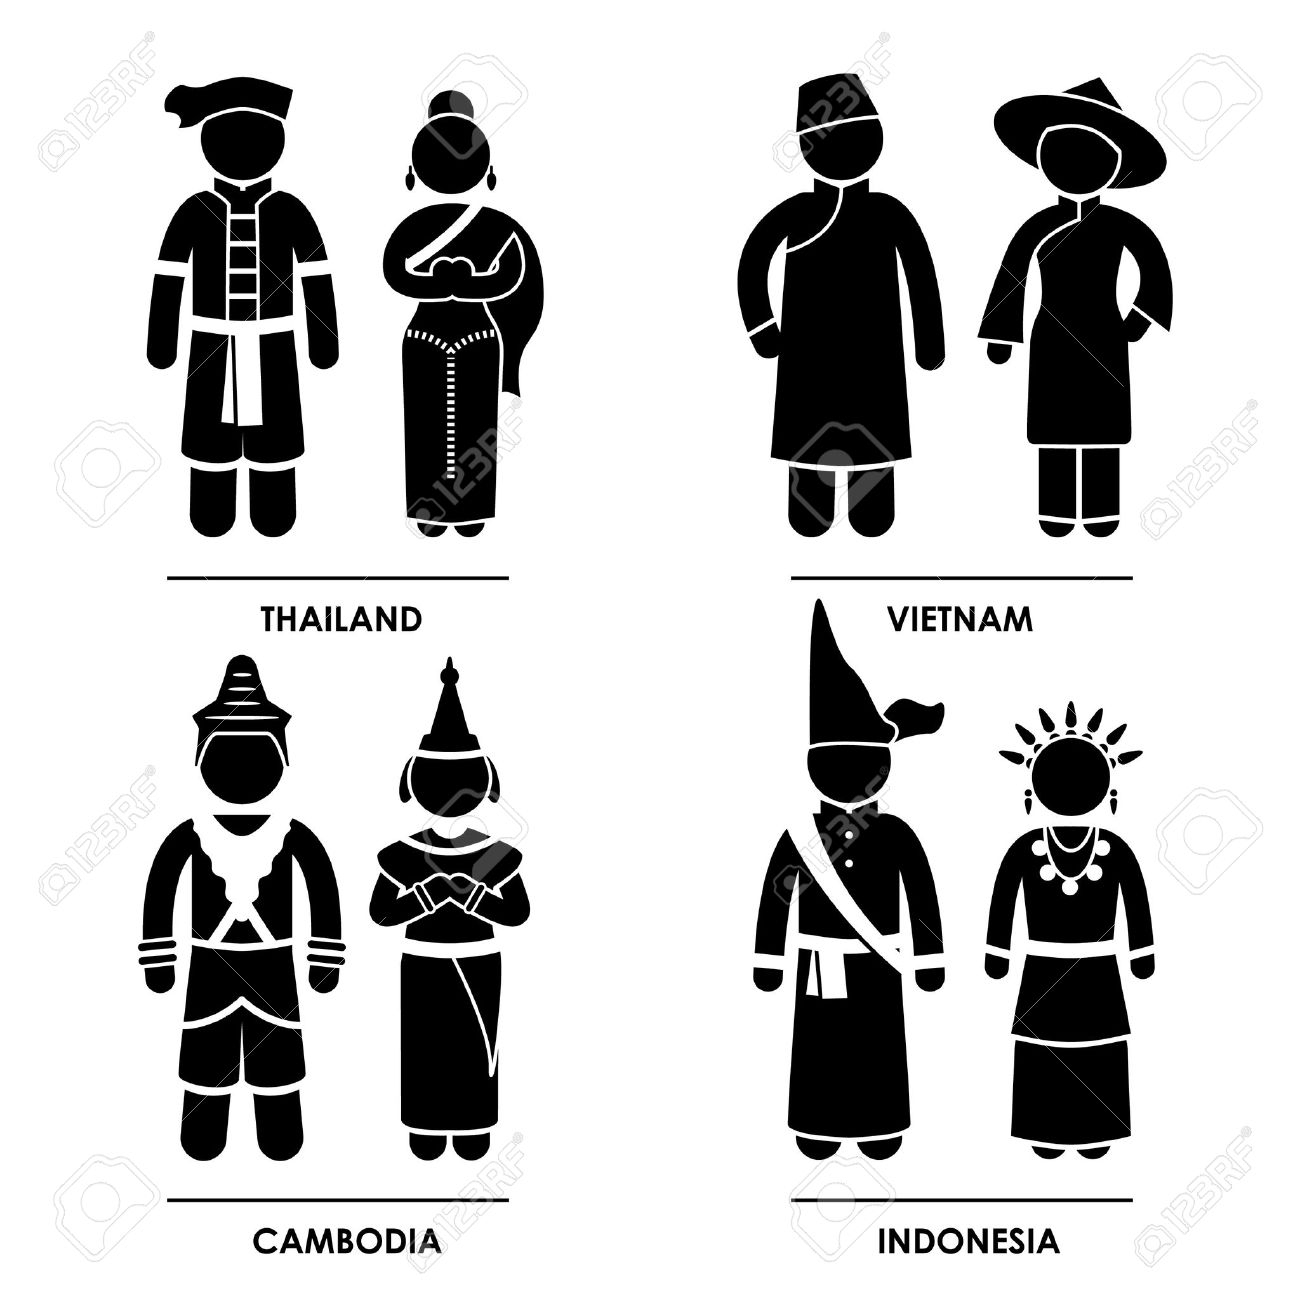 Southeast Asia - Thailand Vietnam Cambodia Indonesia Man Woman People National Traditional Costume Dress Clothing Icon Symbol Sign Pictogram Stock Vector - 15387272